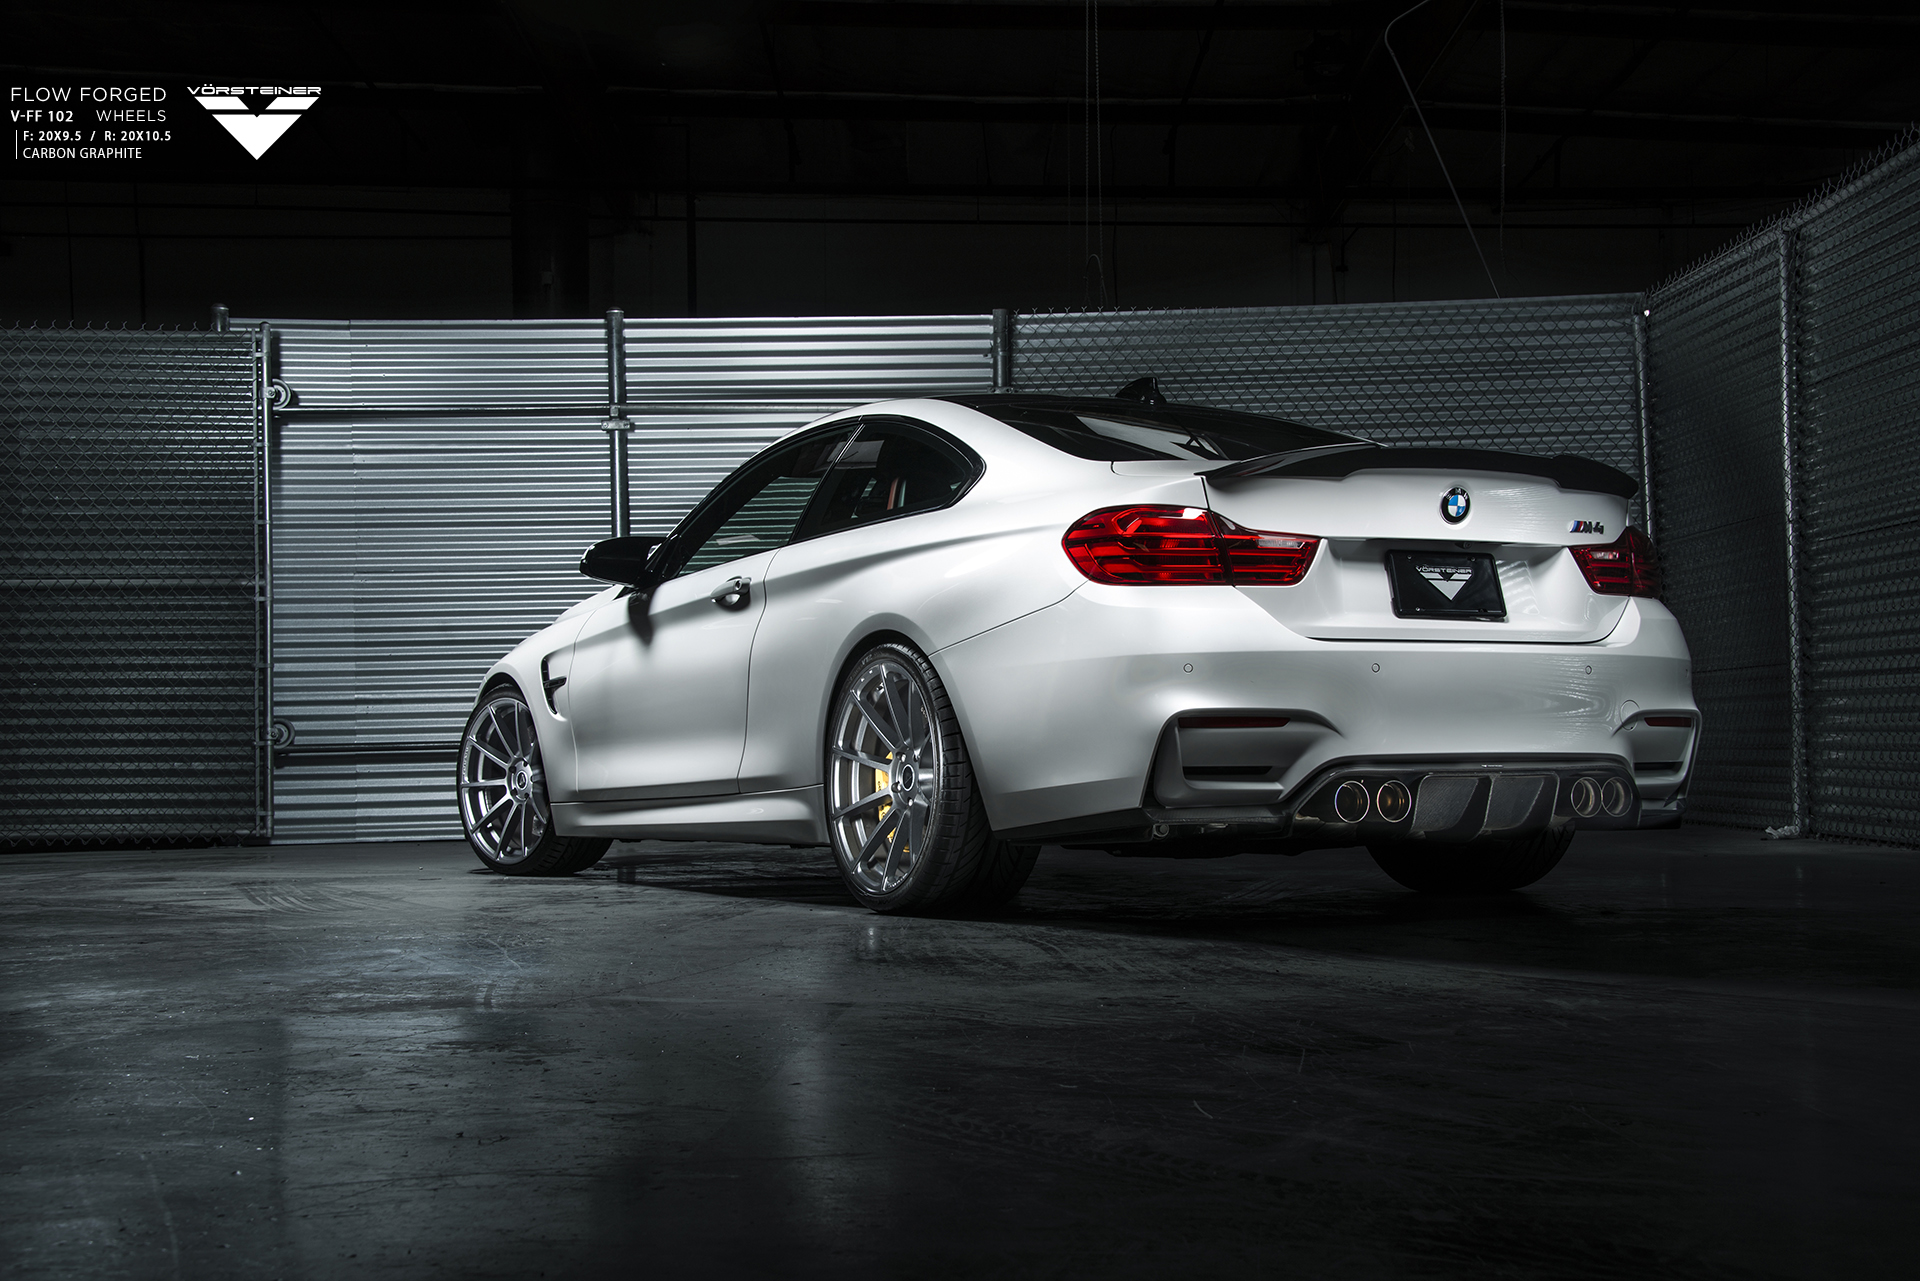 Vorsteiner Flow Forged and EVO Aero Program for the F82 M4 Image 3